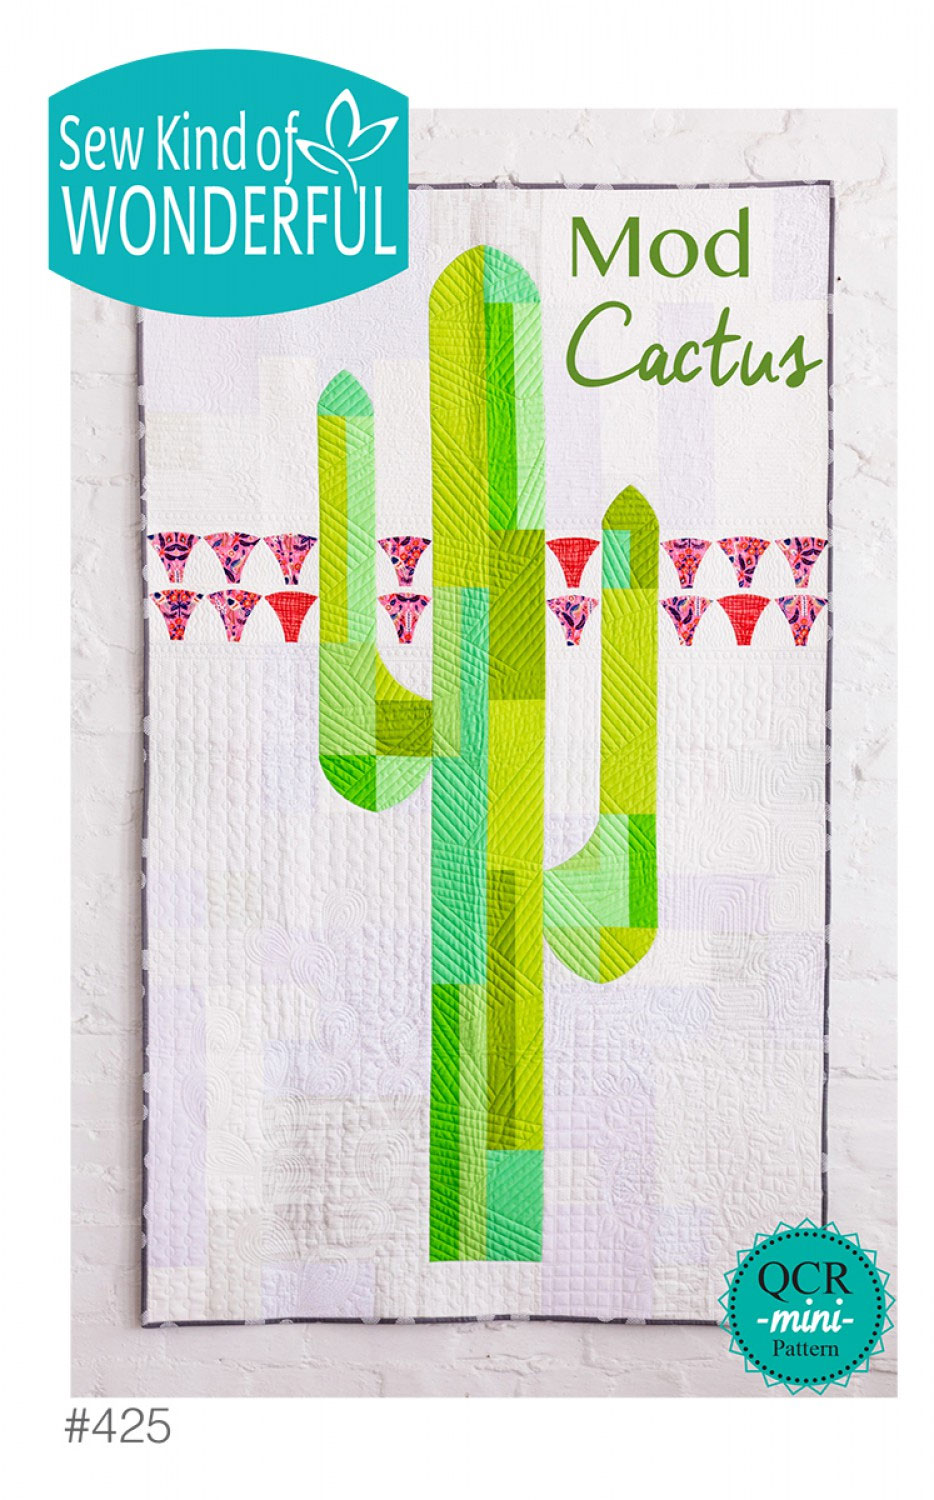 Mod-Cactus-quilt-sewing-pattern-sew-kind-of-wonderful-front